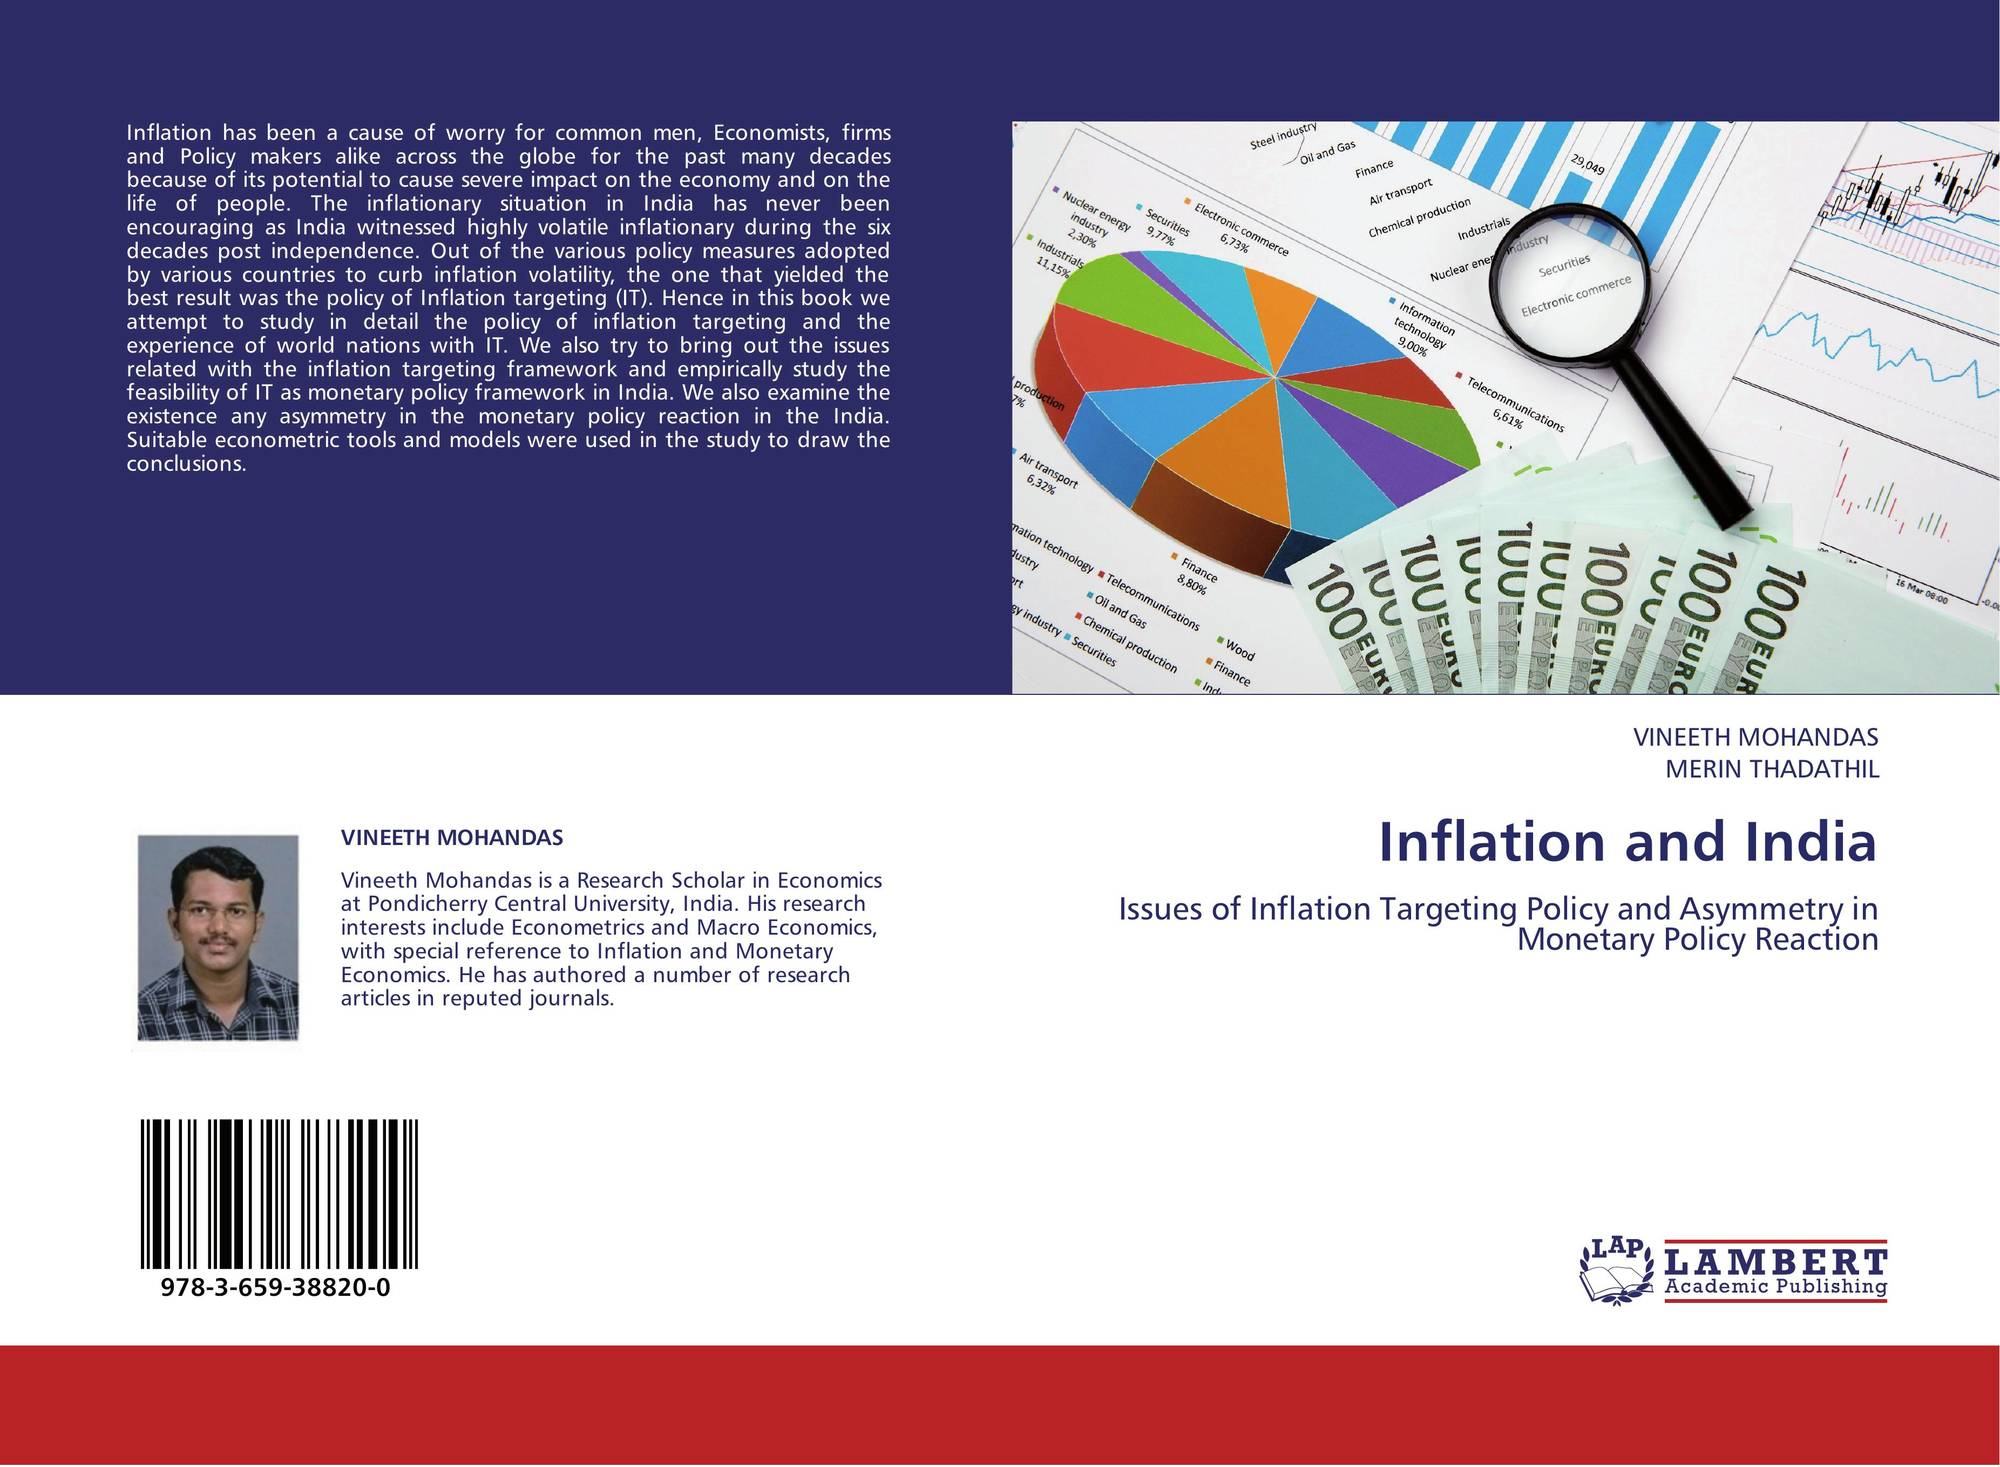 inflation and monitory policies in india economics essay Role of inflation in economy inflation always has a significant impact on the economy a steady inflation makes it difficult to renegotiate some prices change in pakistan's monetary policies has contributed to a reduction in inflation rate inflation rate in pakistan was primarily fuelled by.